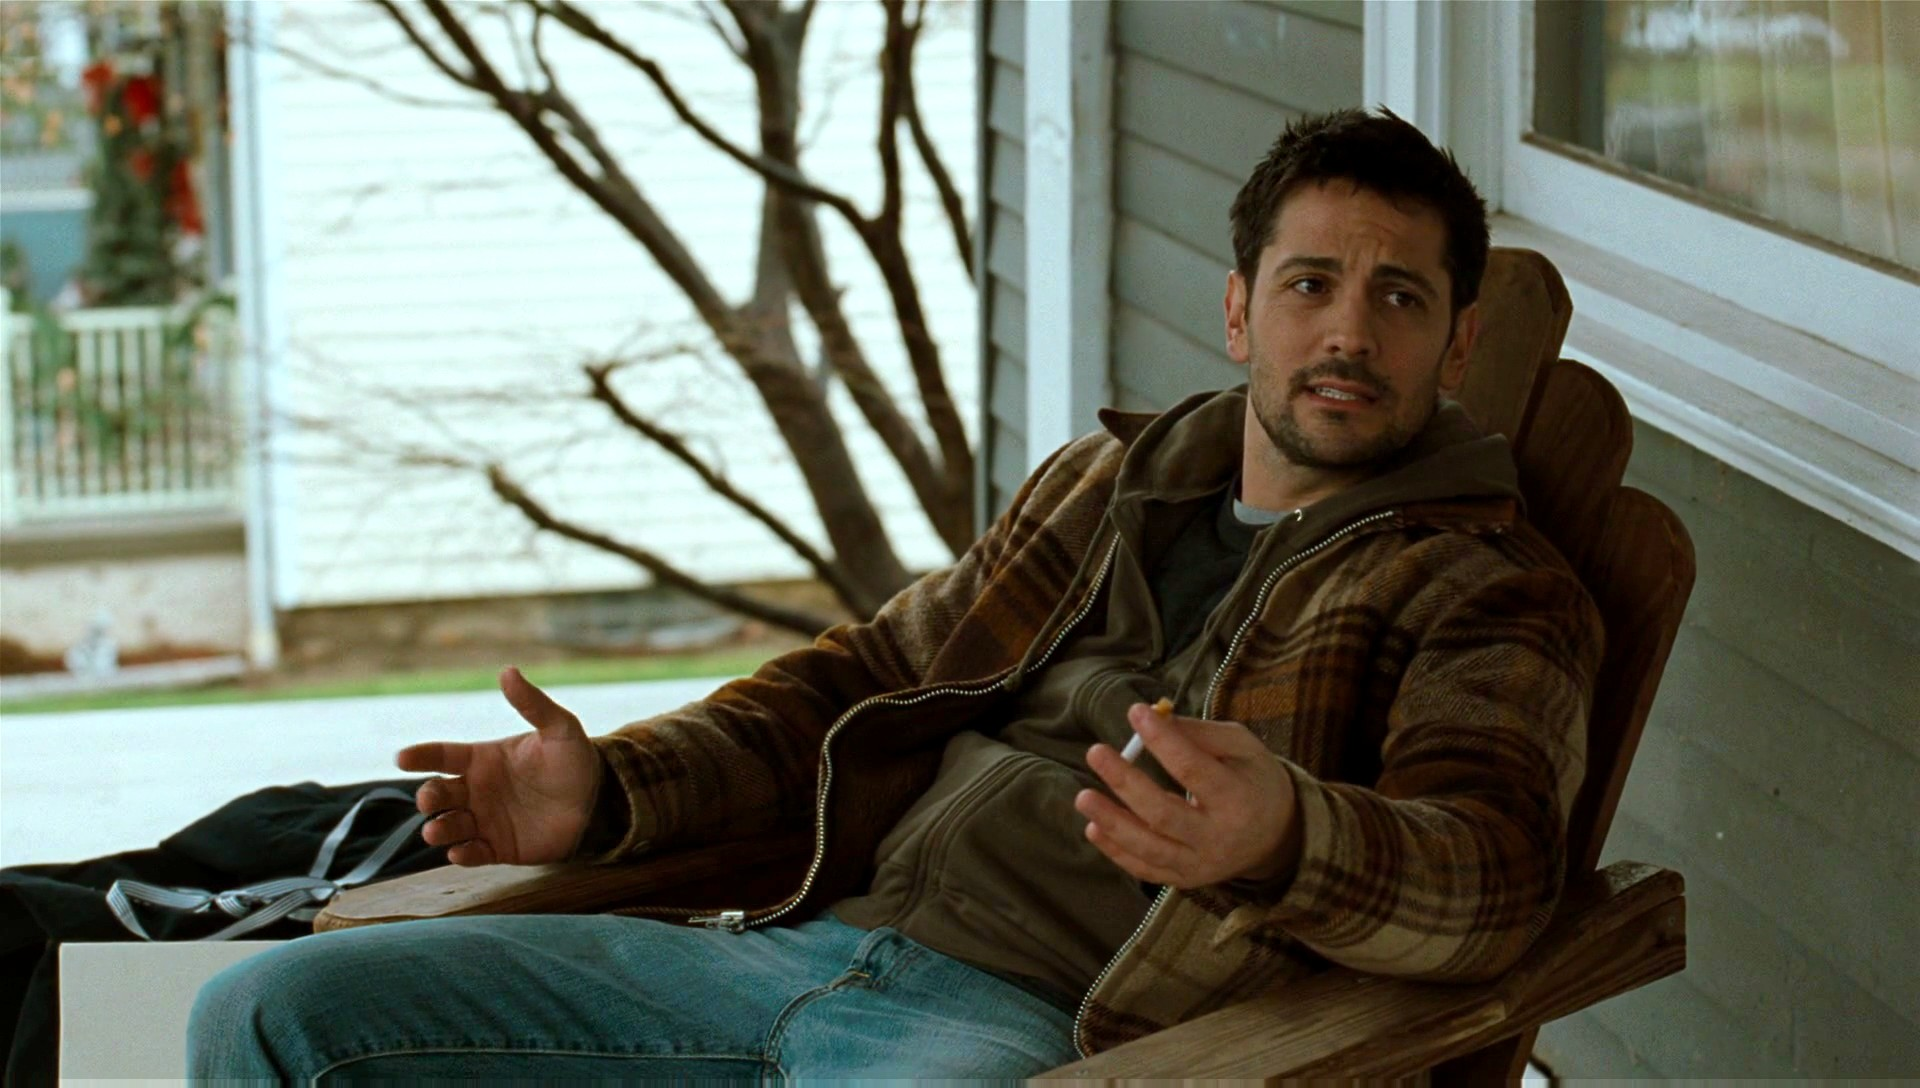 michael landes movies - HD 1920×1088